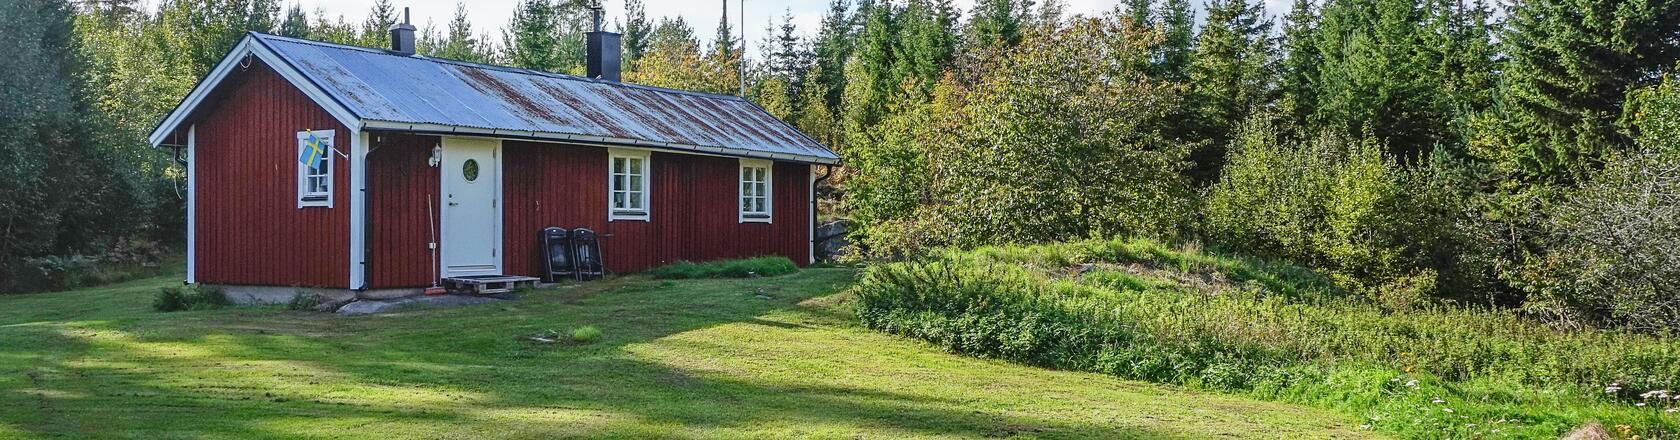 Västervik in Sweden — Rent a holiday home with DanCenter